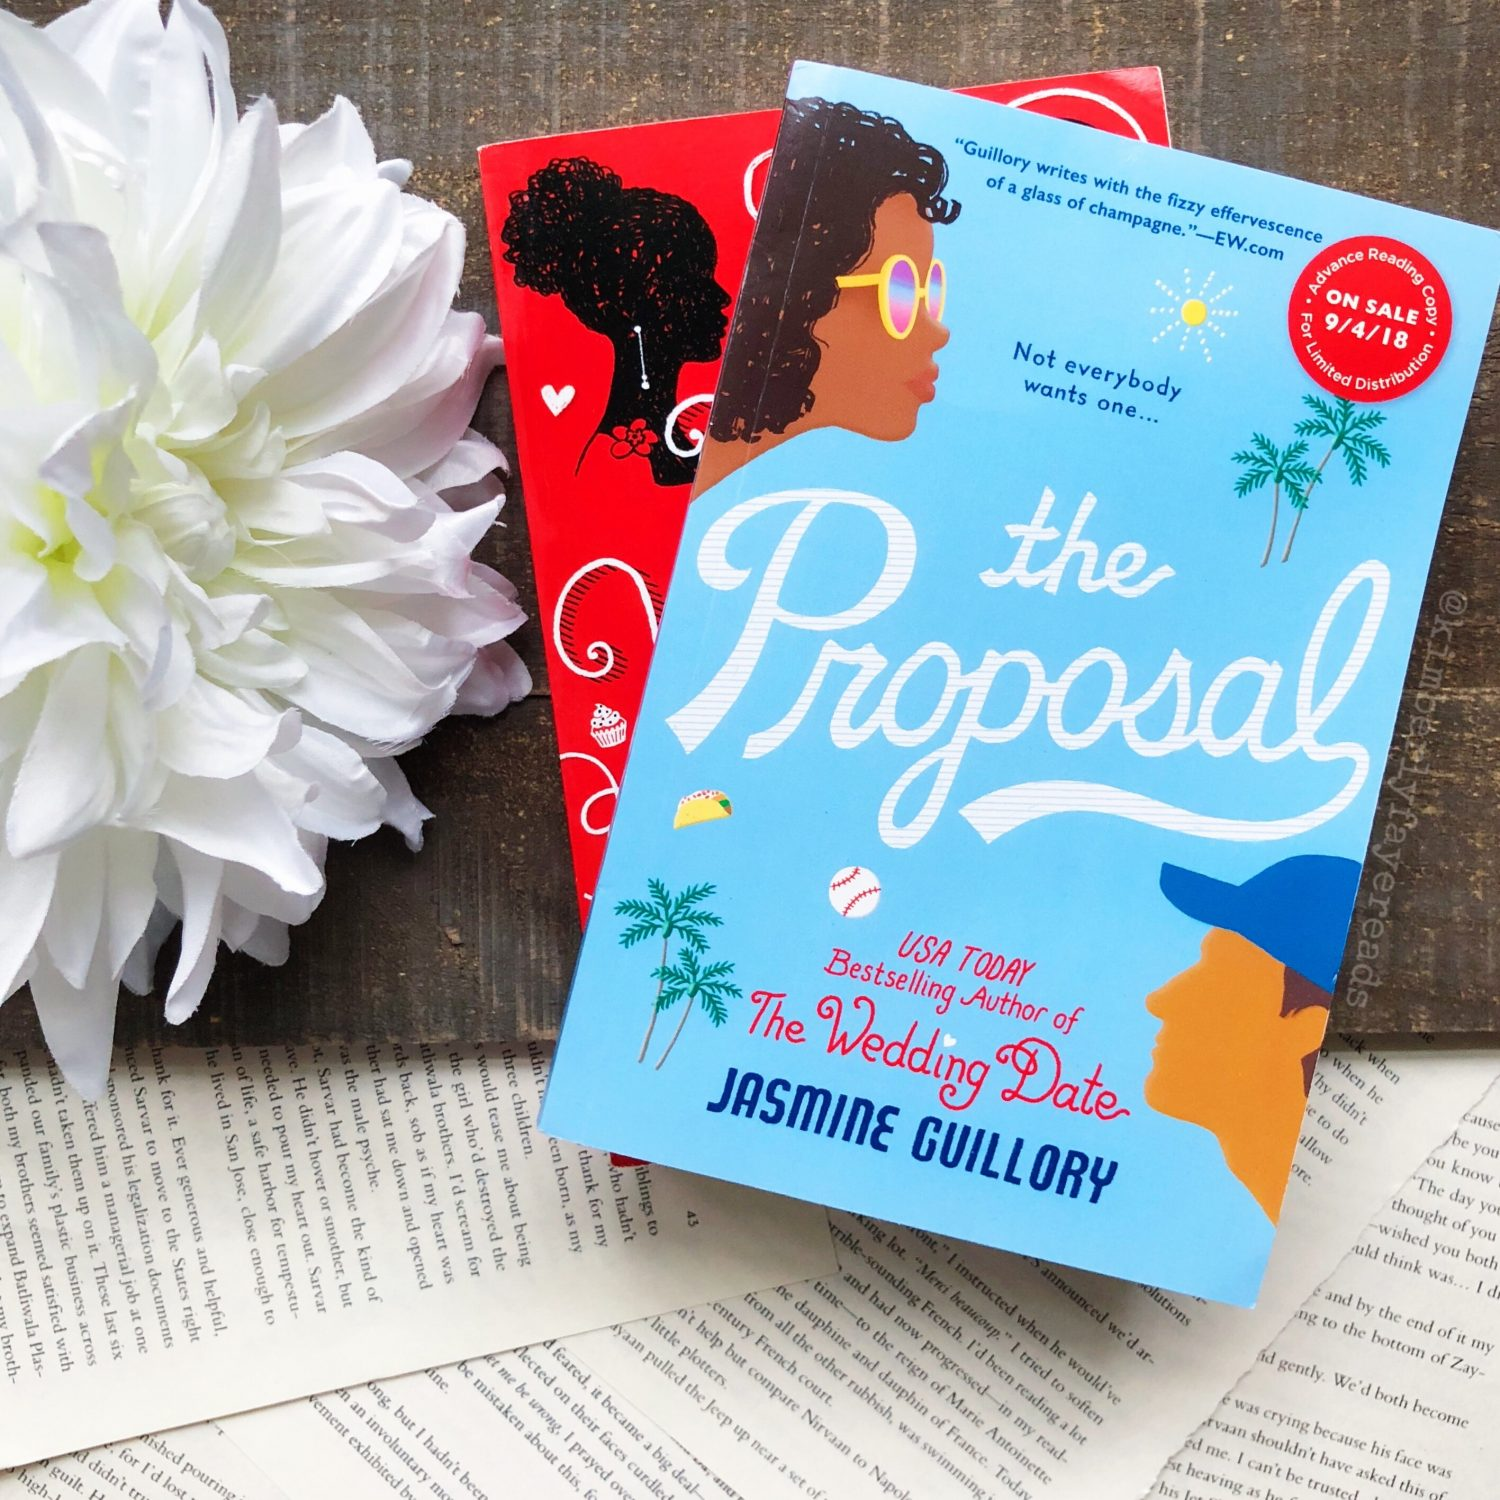 In Review: The Proposal (The Wedding Date #2) by Jasmine Guillory